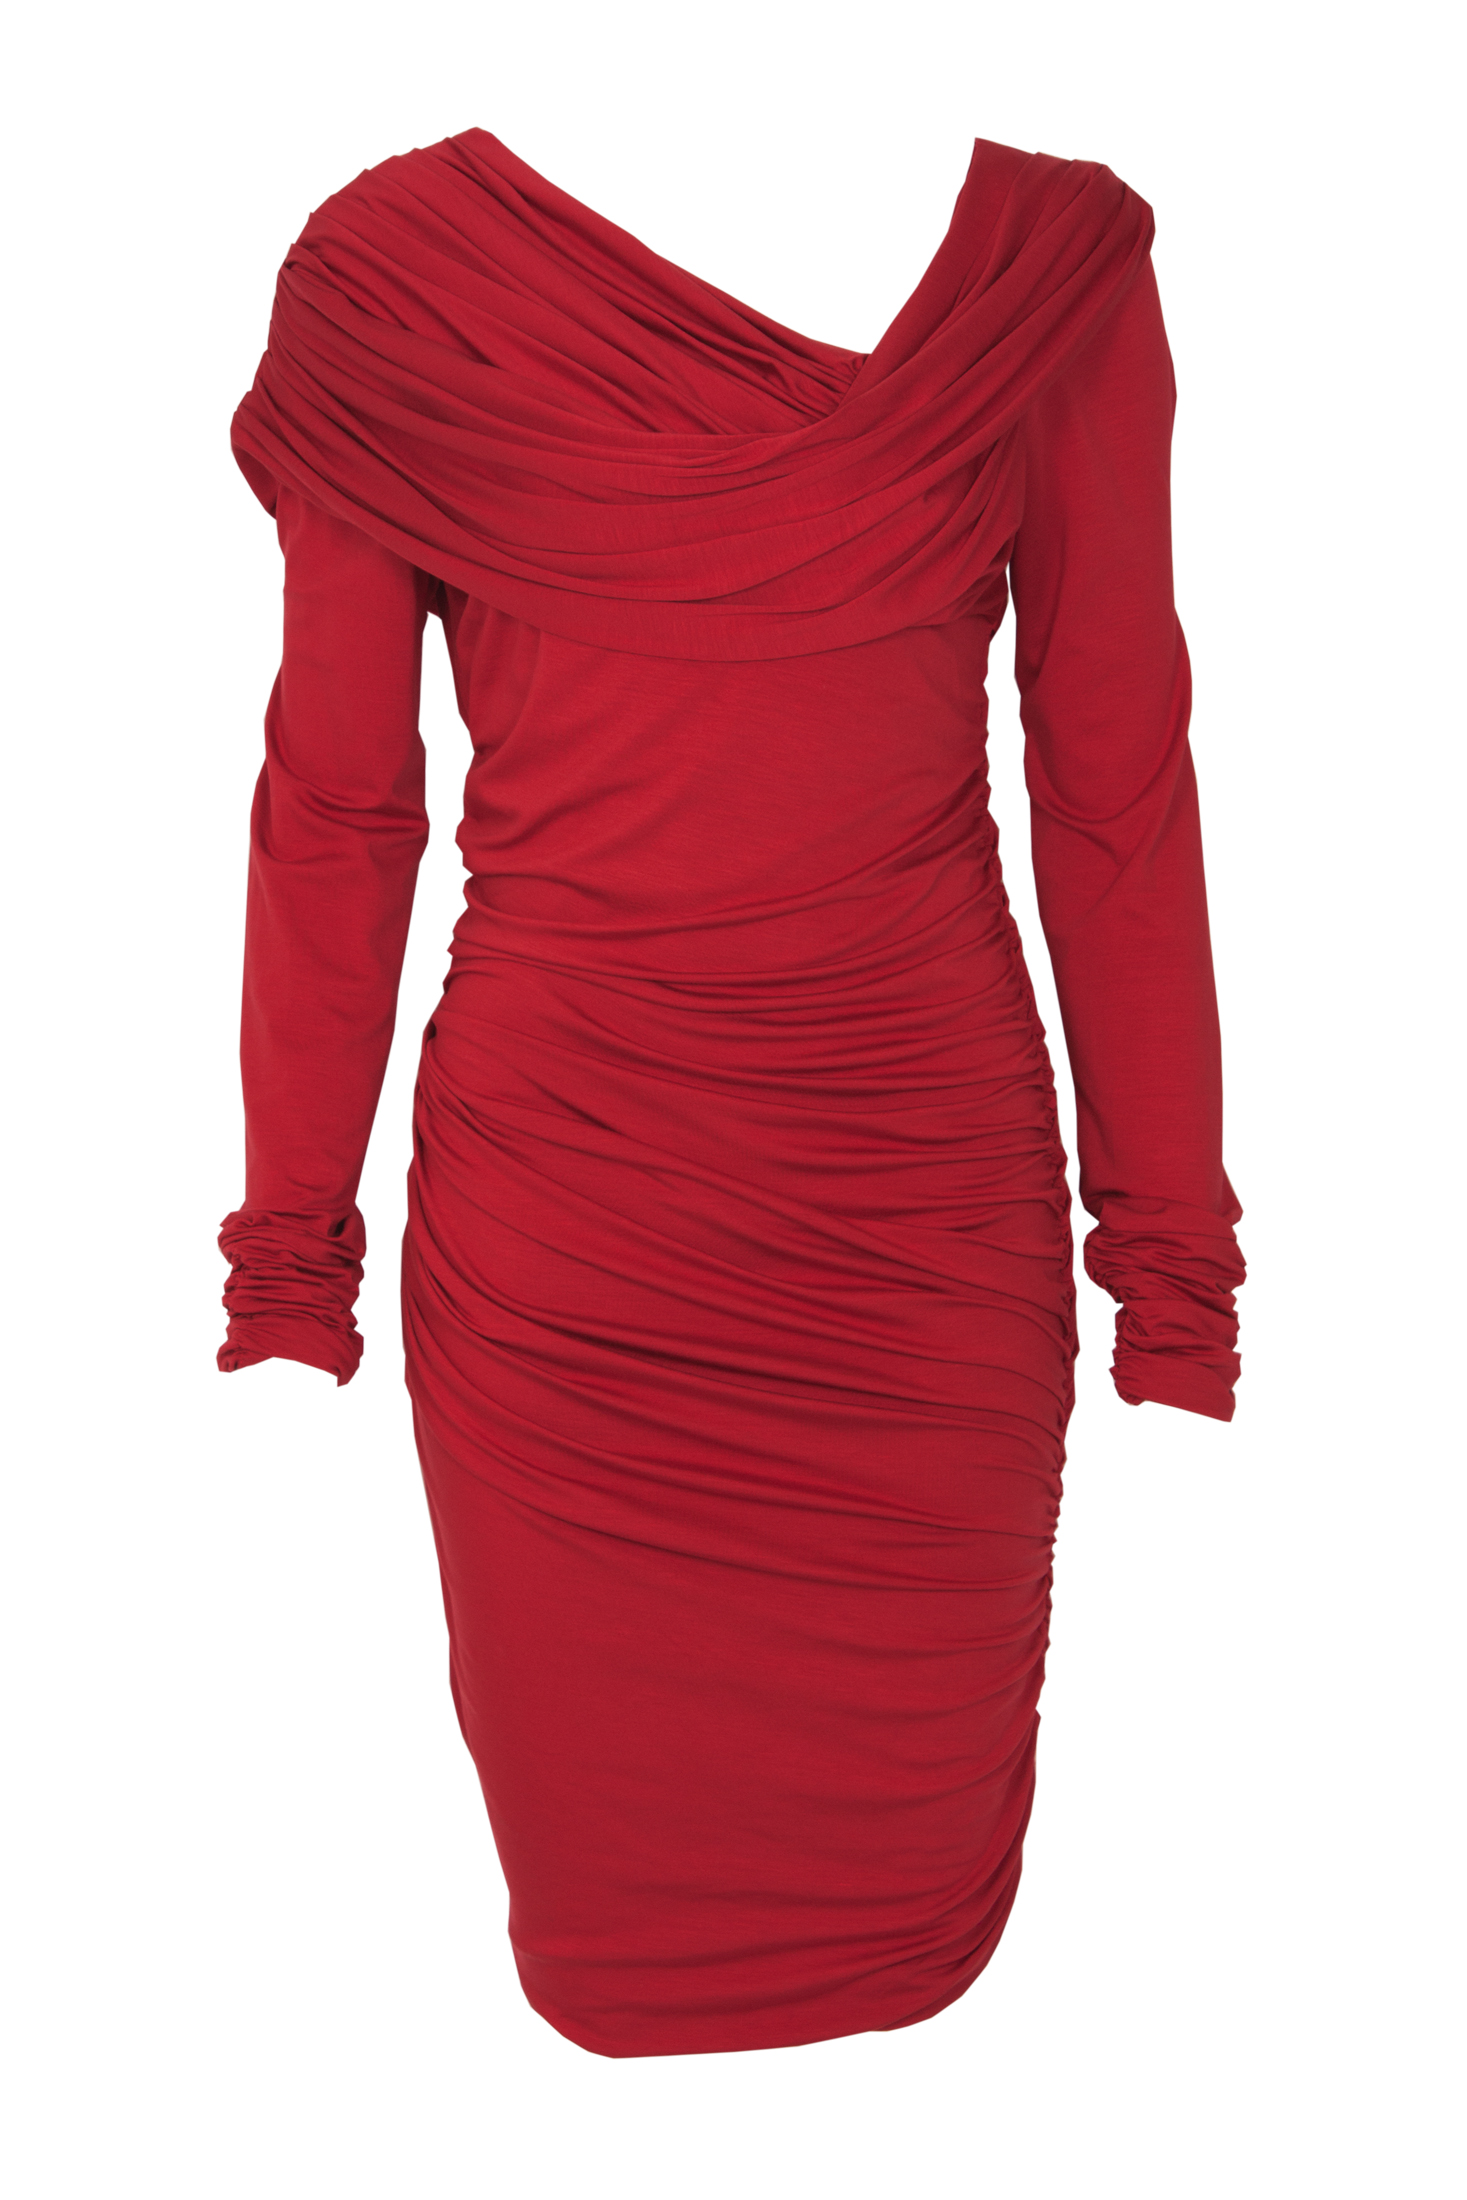 Ingora classic red dress with sleeves image fab after fifty